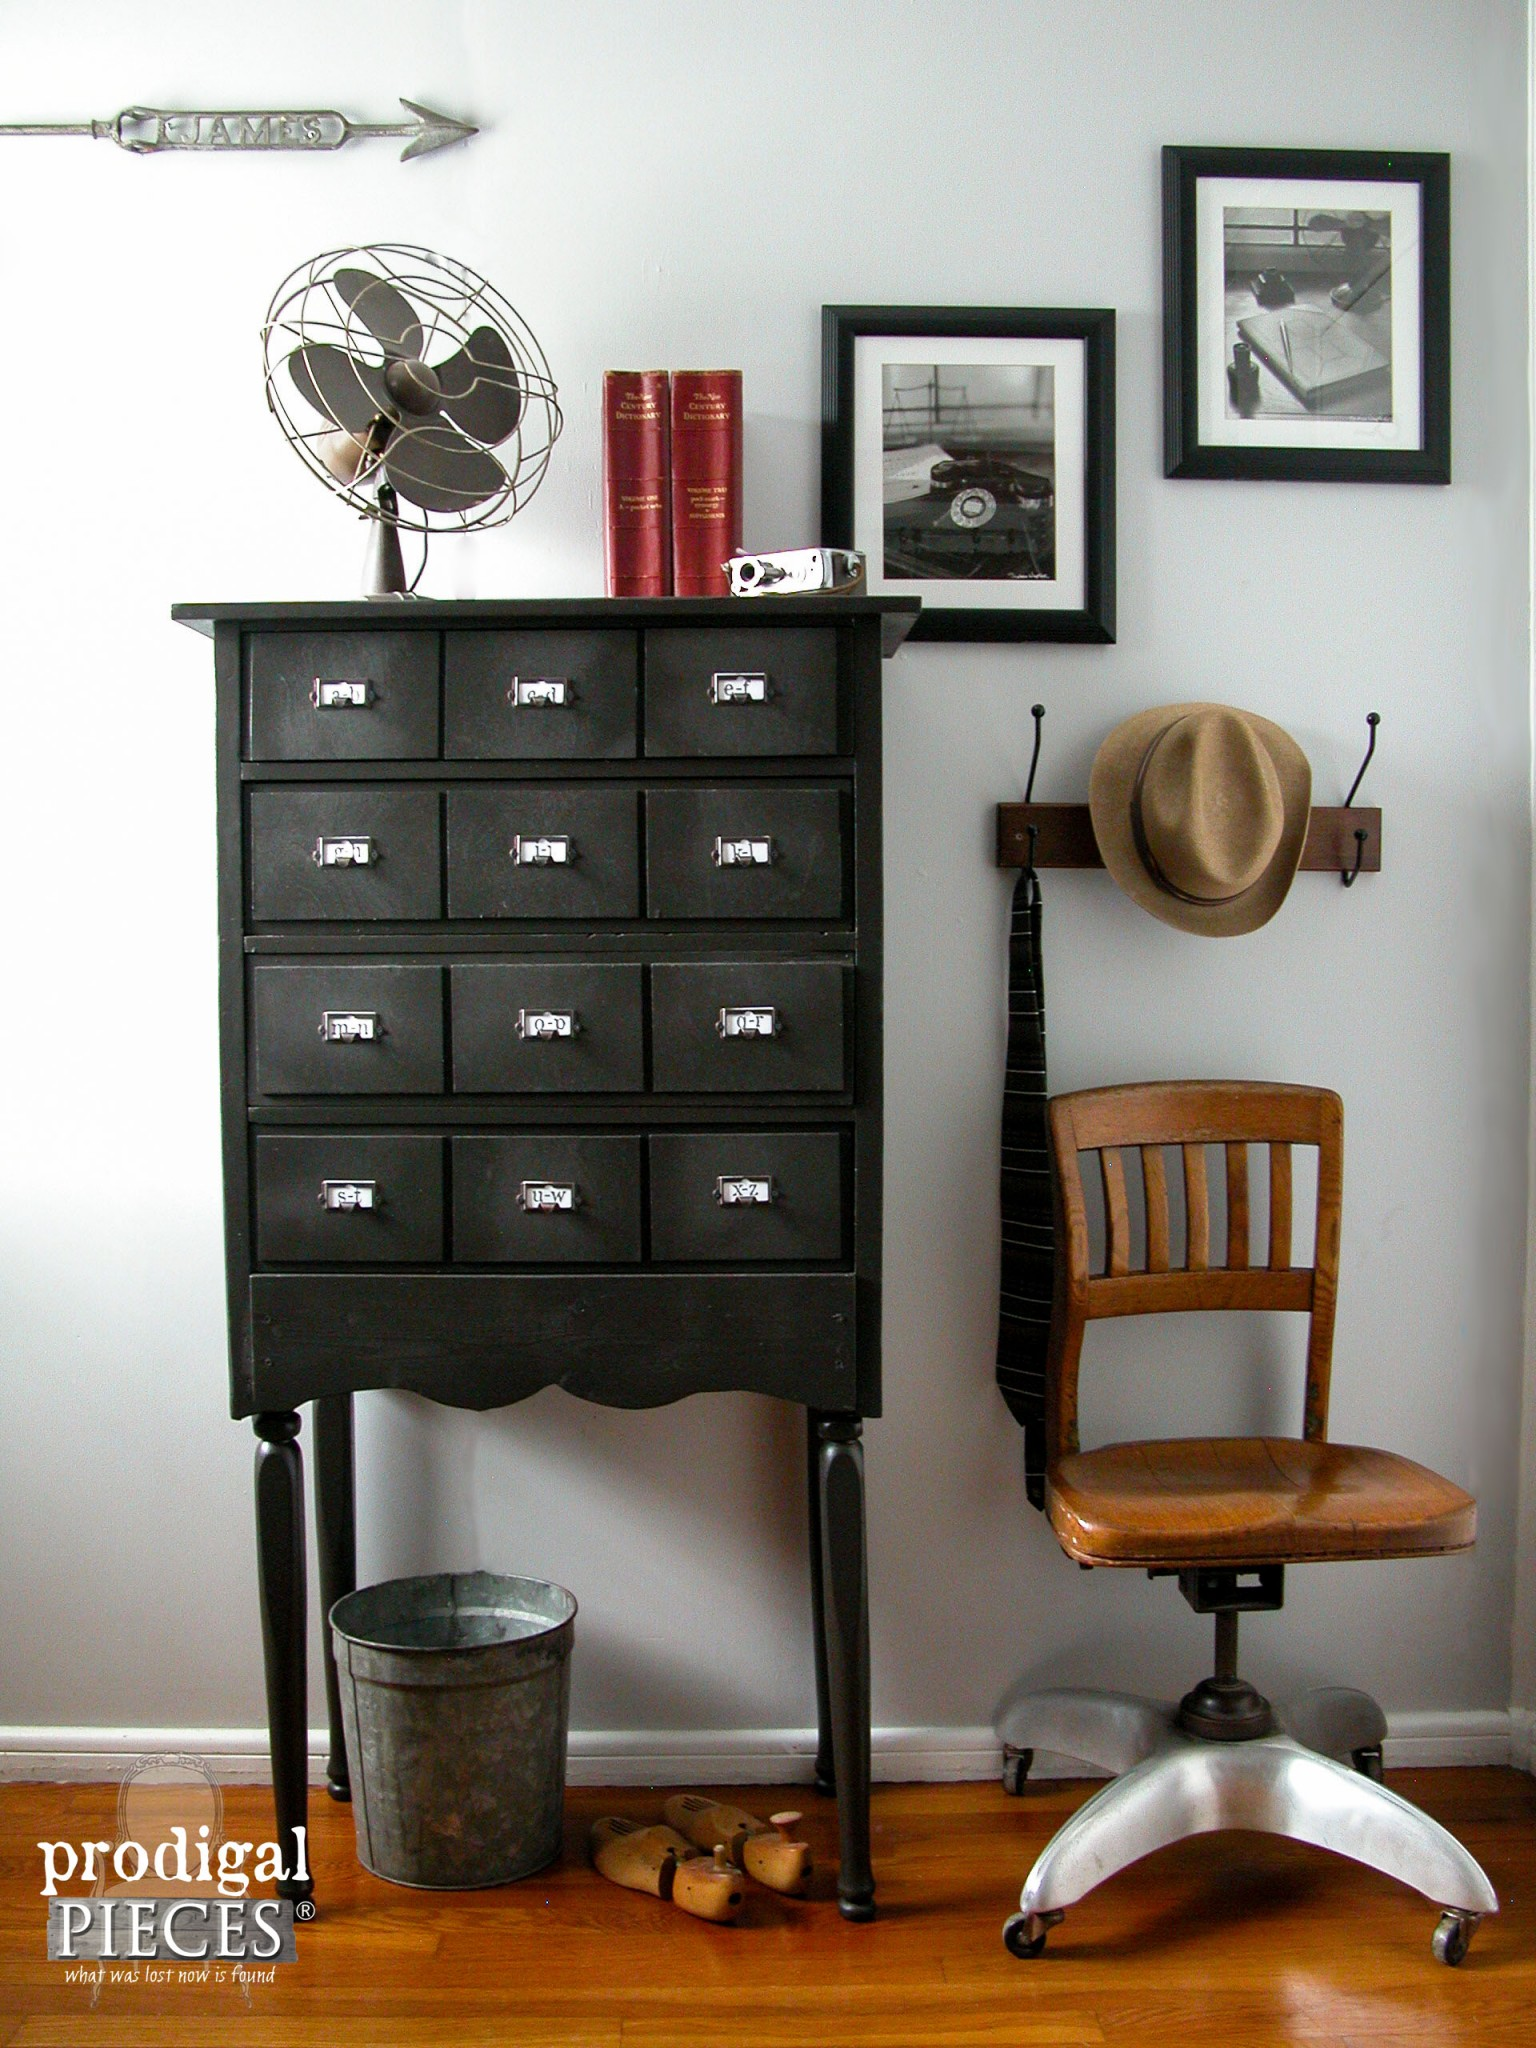 Faux Vintage Card Catalog Made from Repurposed Child's Chest of Drawers by Prodigal Pieces | www.prodigalpieces.com